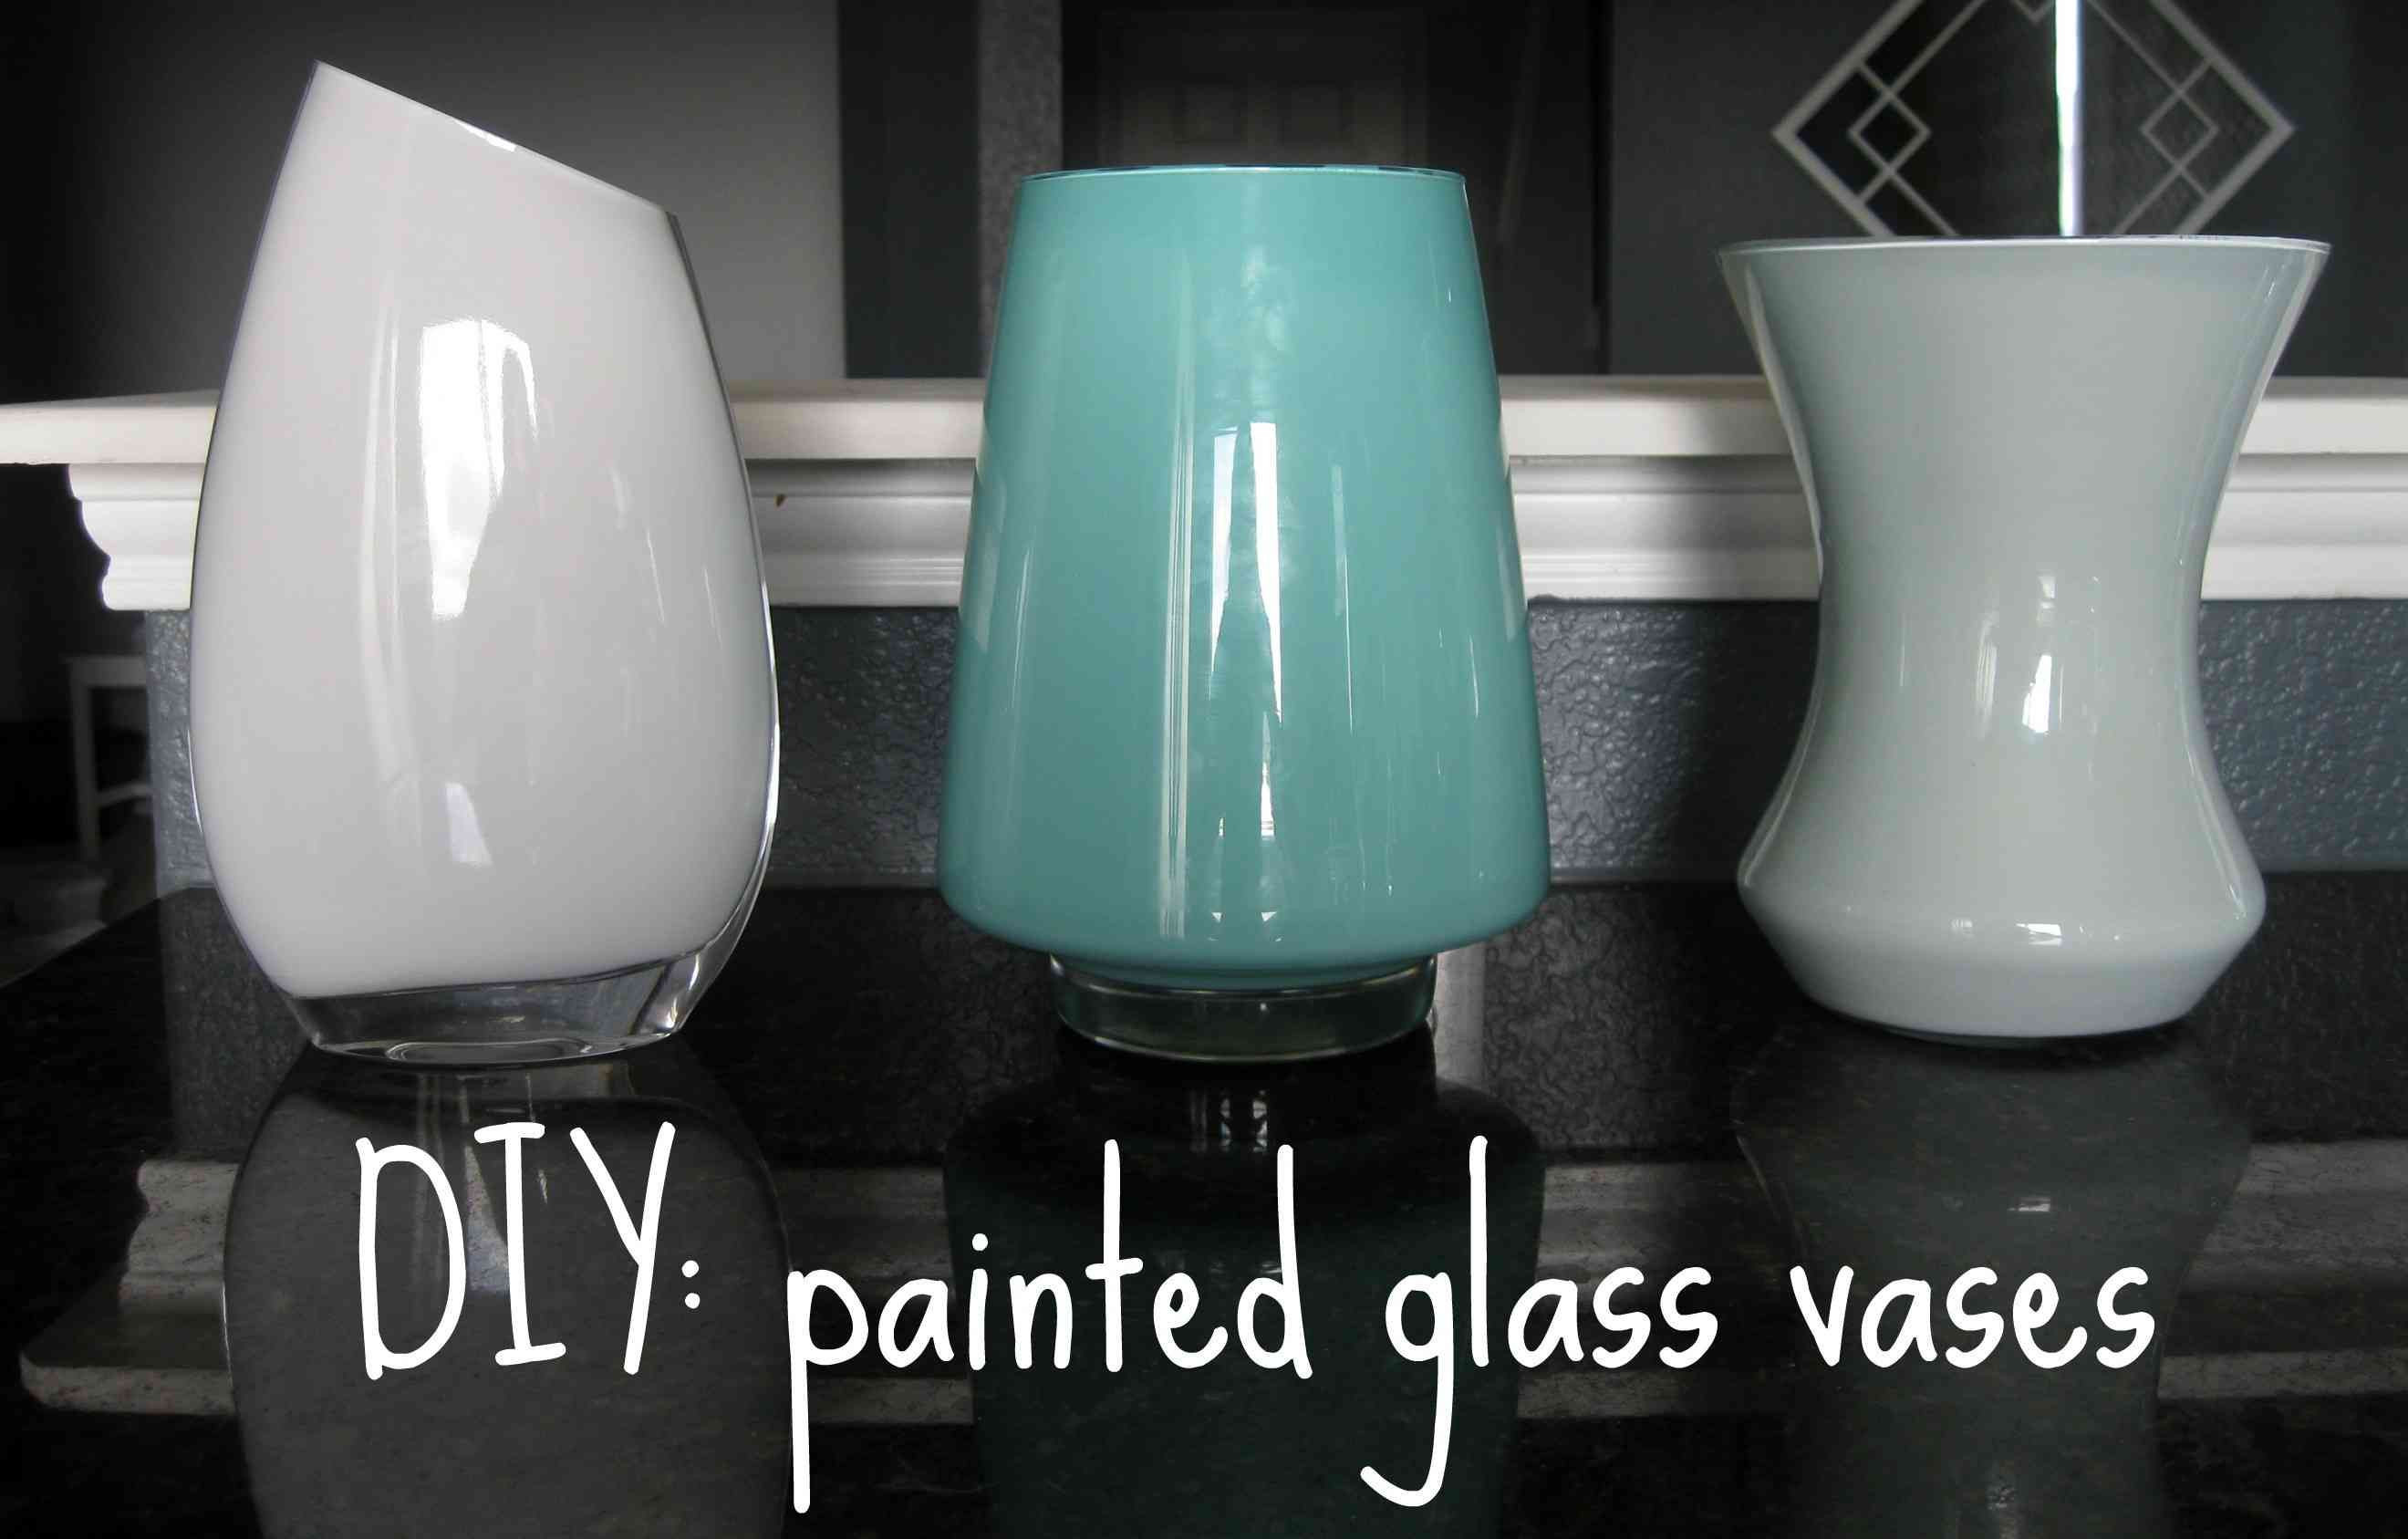 Glass Candy Vases Of 23 Blue Crystal Vase the Weekly World Intended for Diy Painted Glass Vasesh Vases How to Paint Vasesi 0d Via Conejita Info